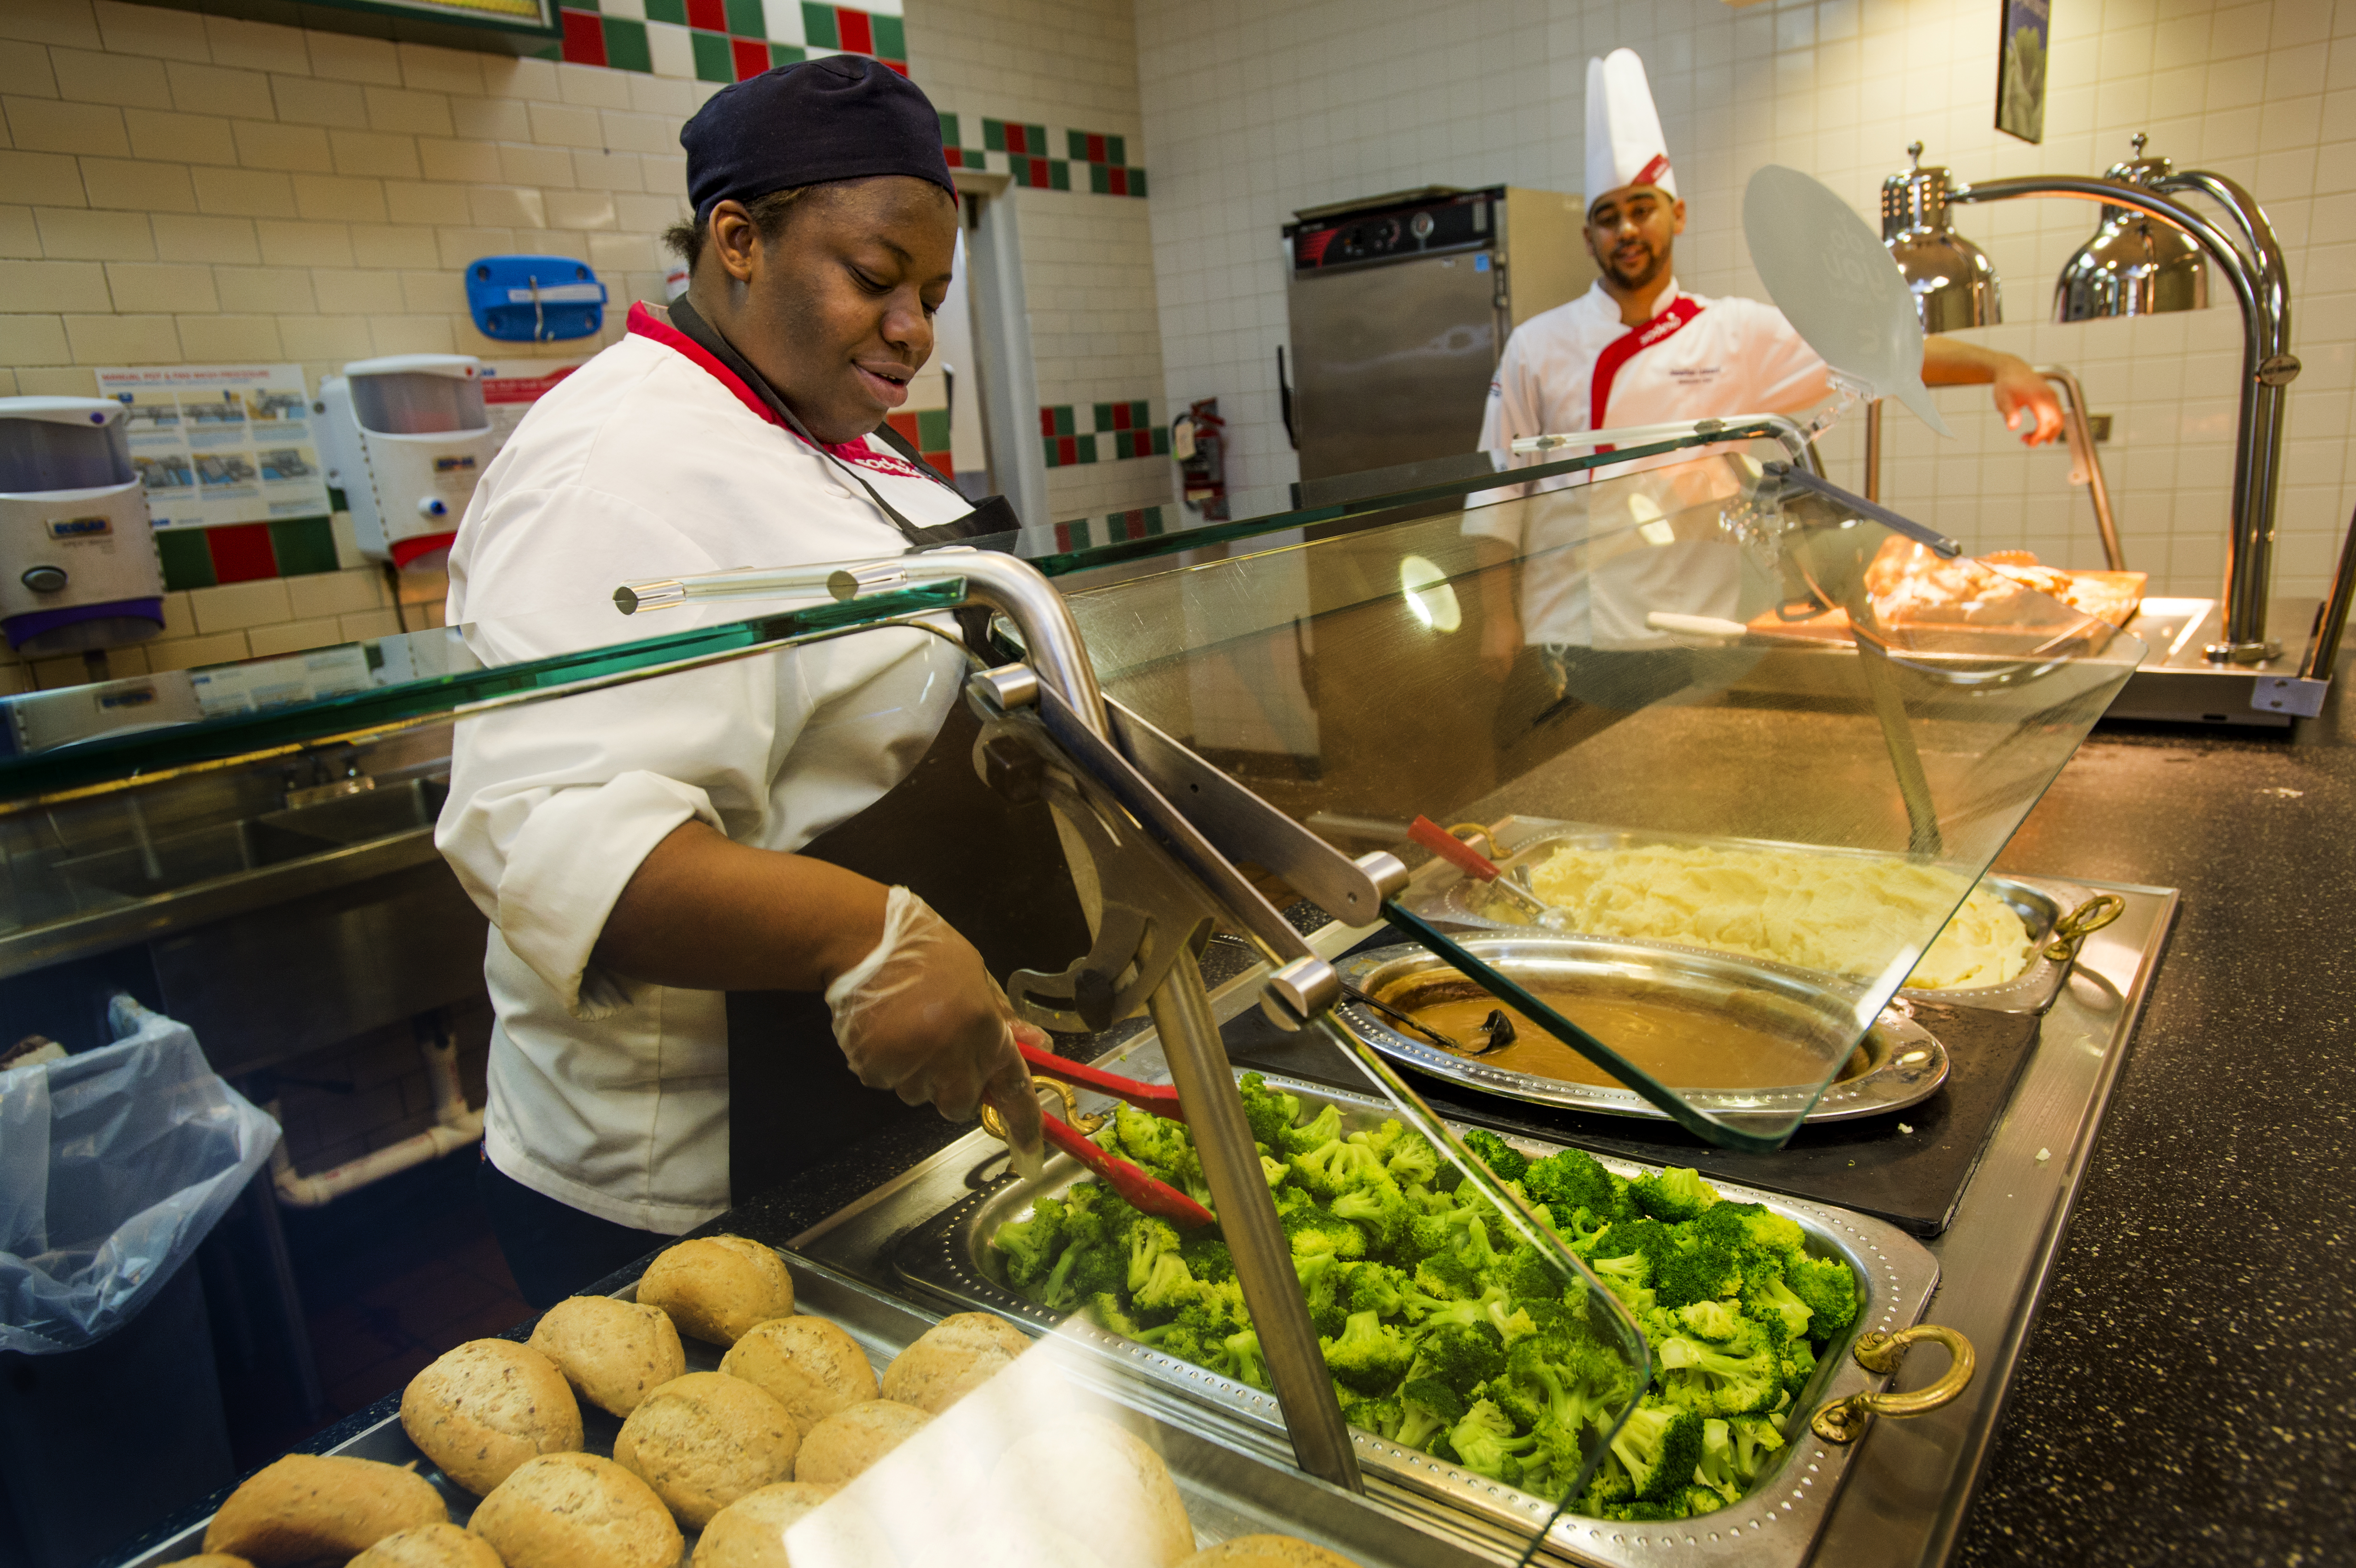 Tulane dining hall worker behind counter.